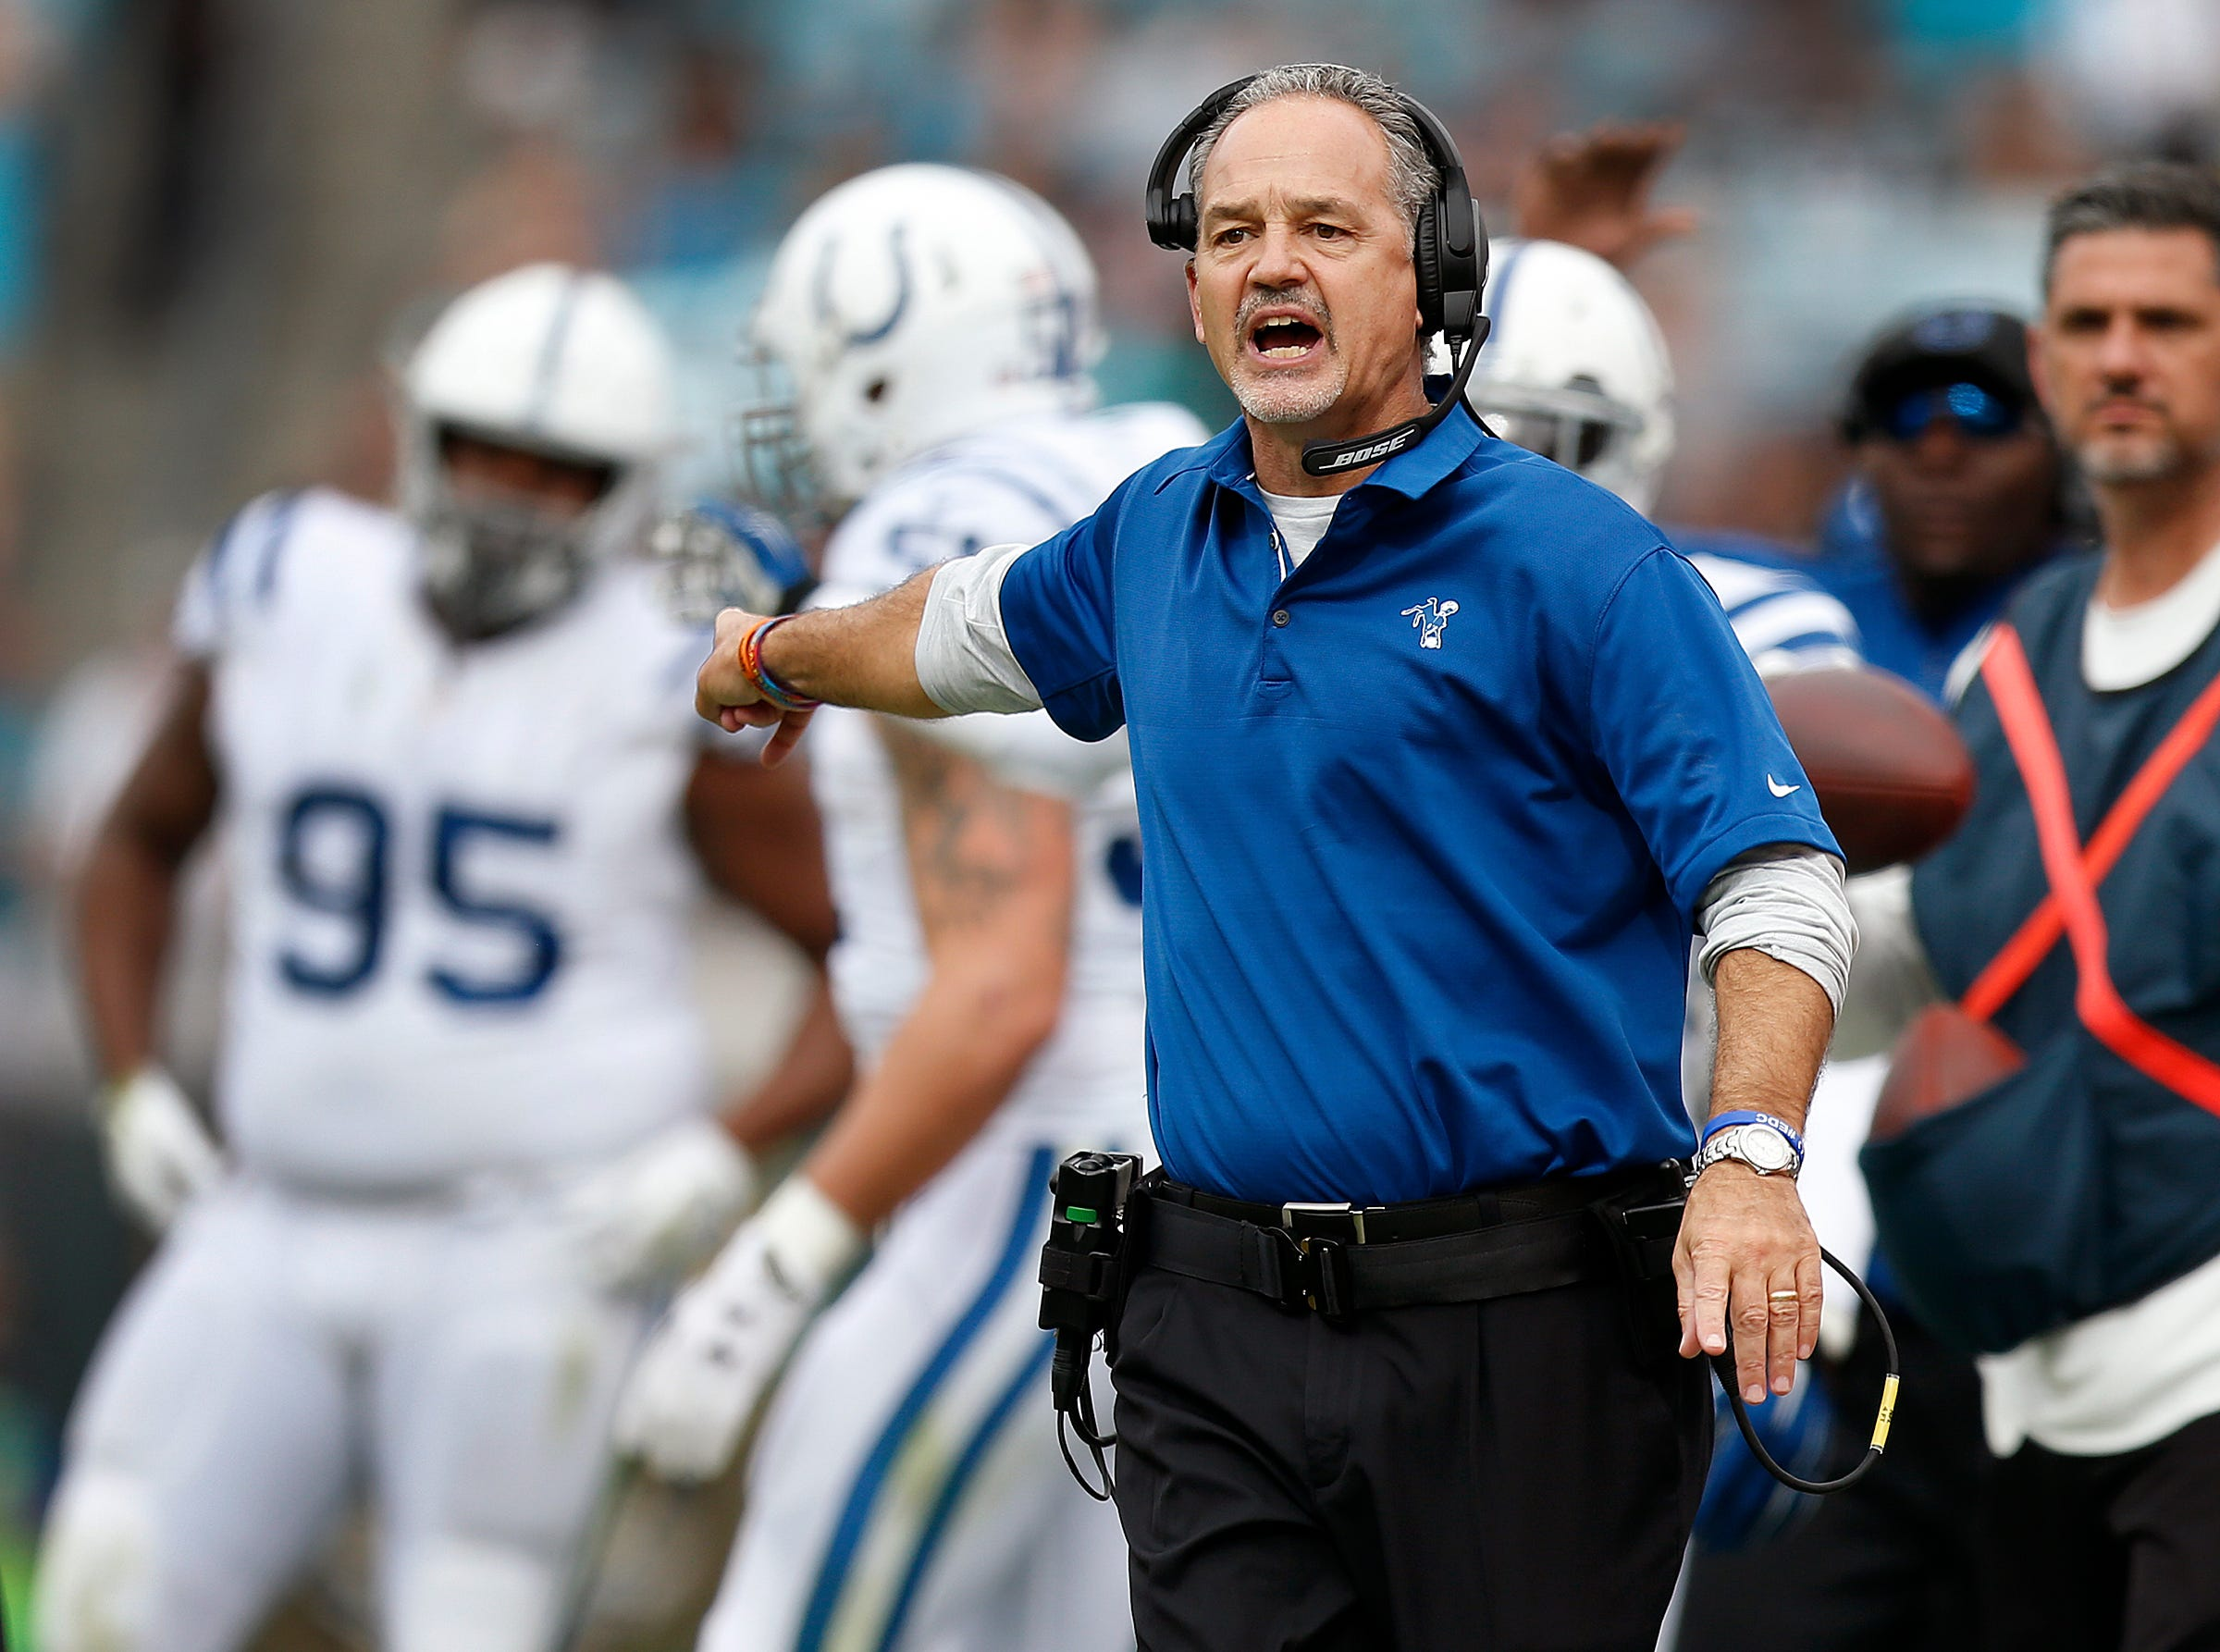 Pagano on Colts QB Luck: 'He's been through hell'